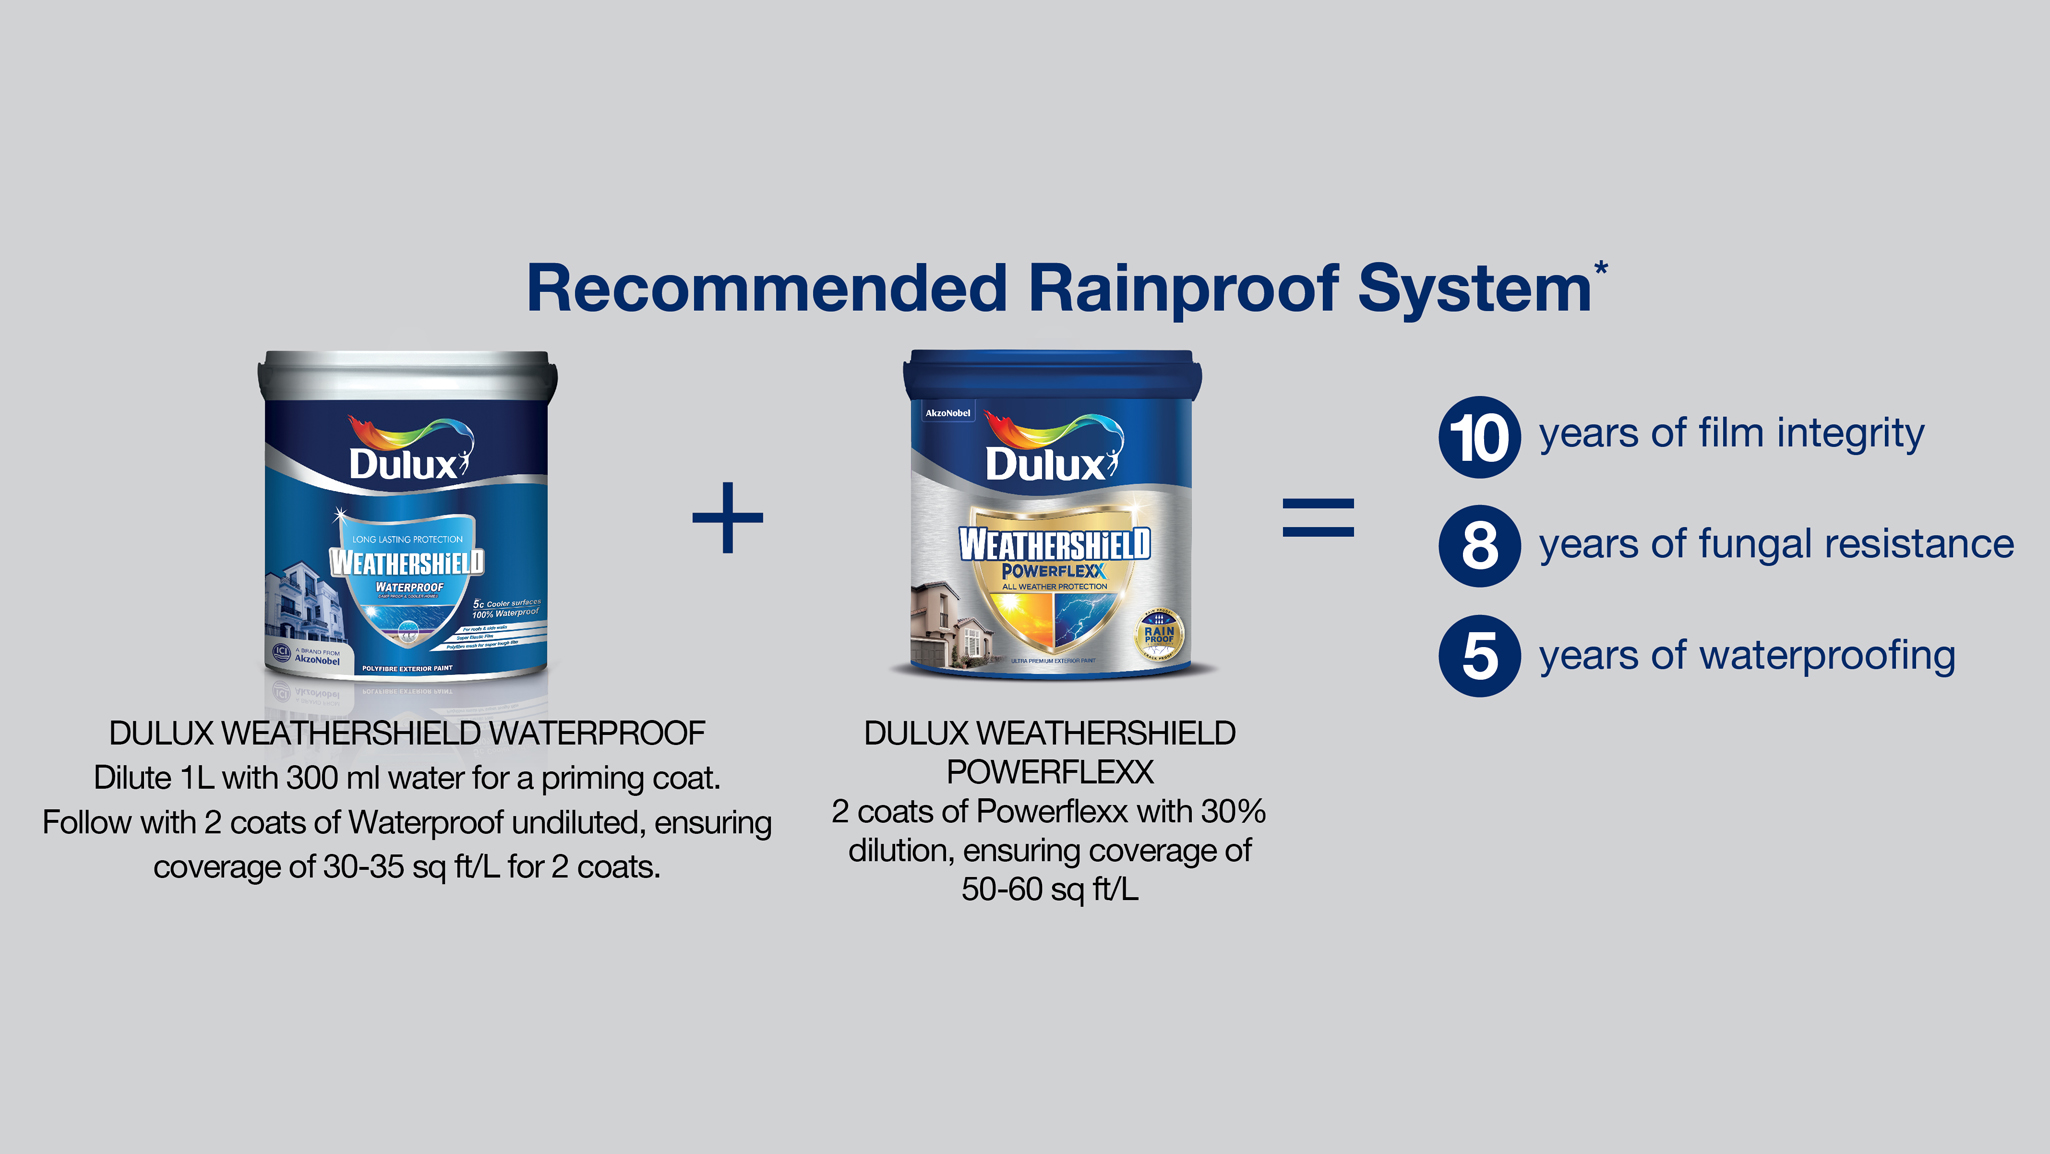 Revolutionary Rainproof Technology and Advanced Elastomeric Latex